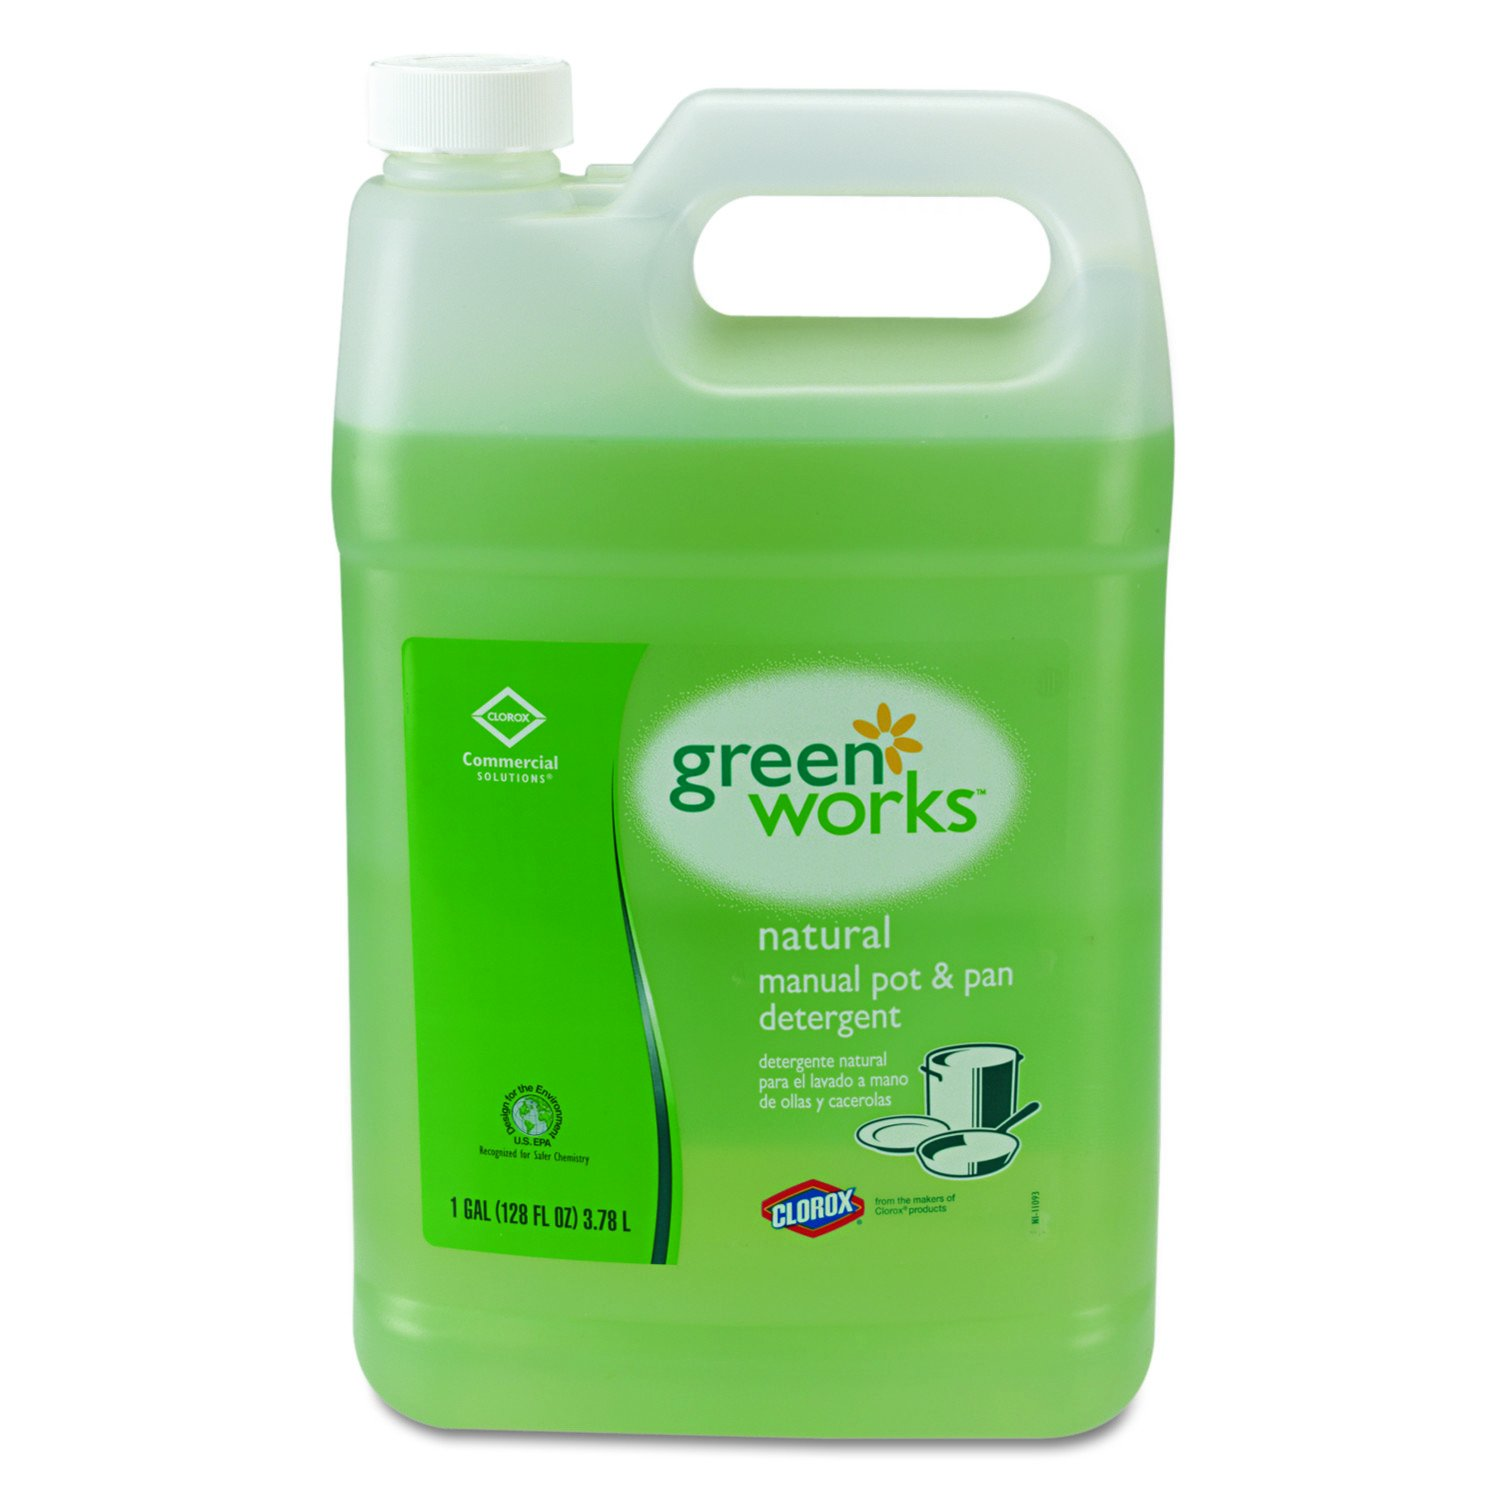 Green Works 30388CT Manual Pot & Pan Dish Liquid, Original, 1gal Bottle (Case of 4) by Green Works